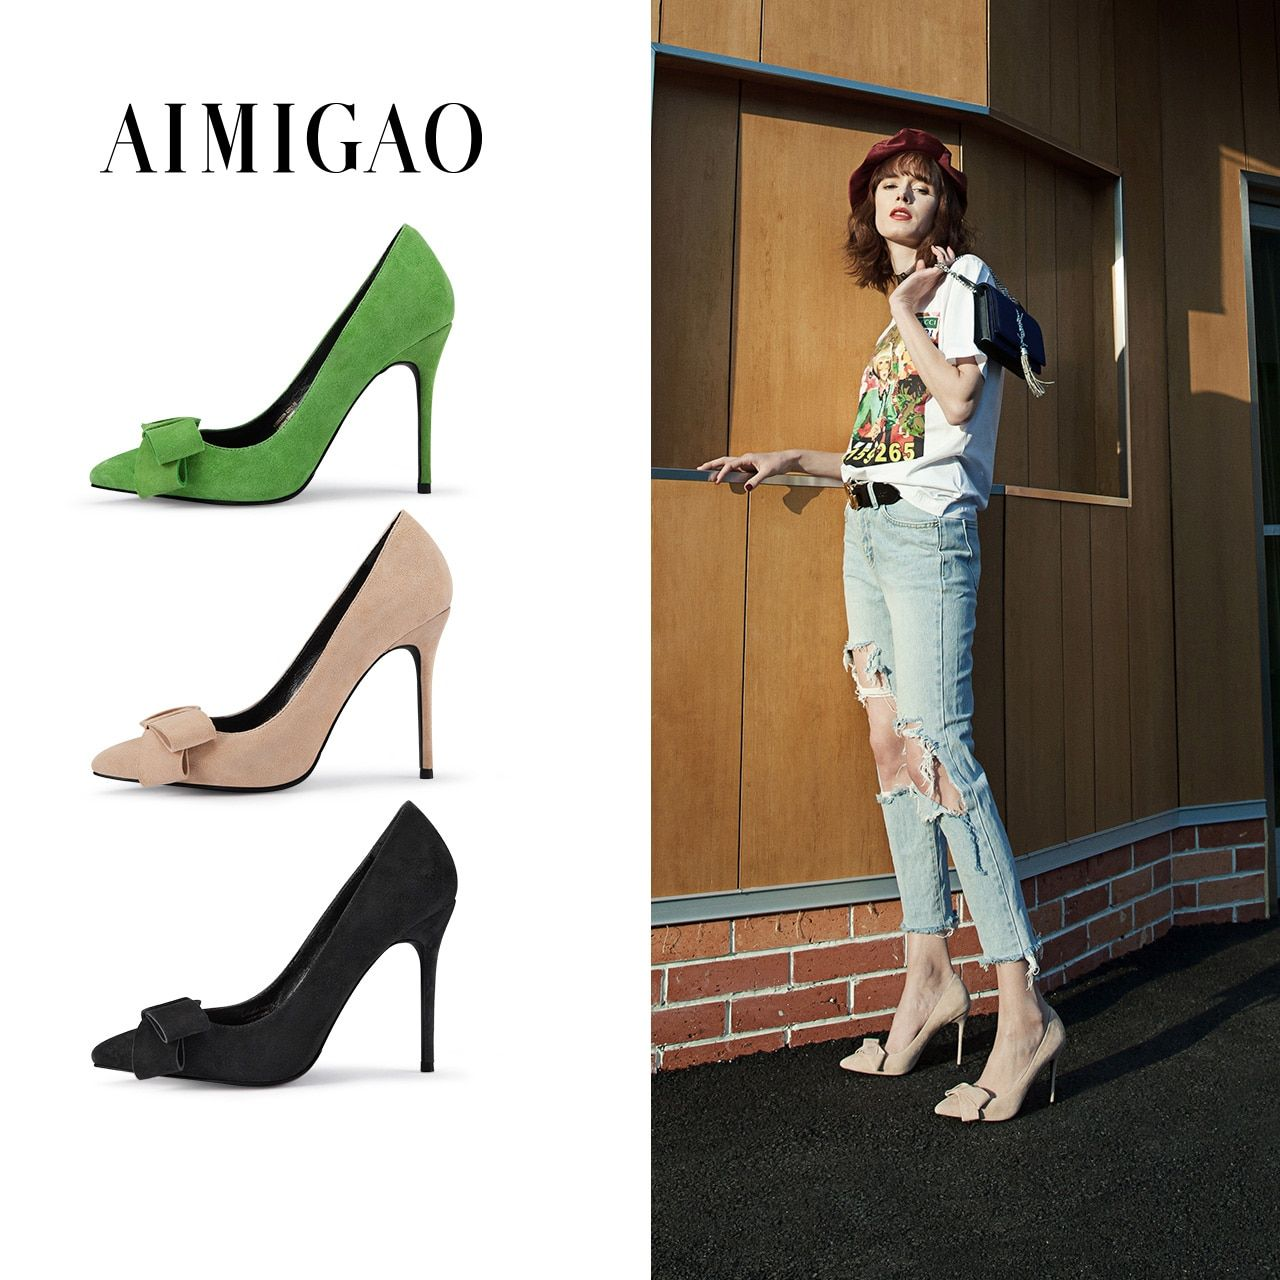 AIMIGAO Genuine Suede Leather Pointed Toe Stiletto High Heel Shoes Fashion Solid Color Lovely Bowknot Pumps Shoes 2018 Spring